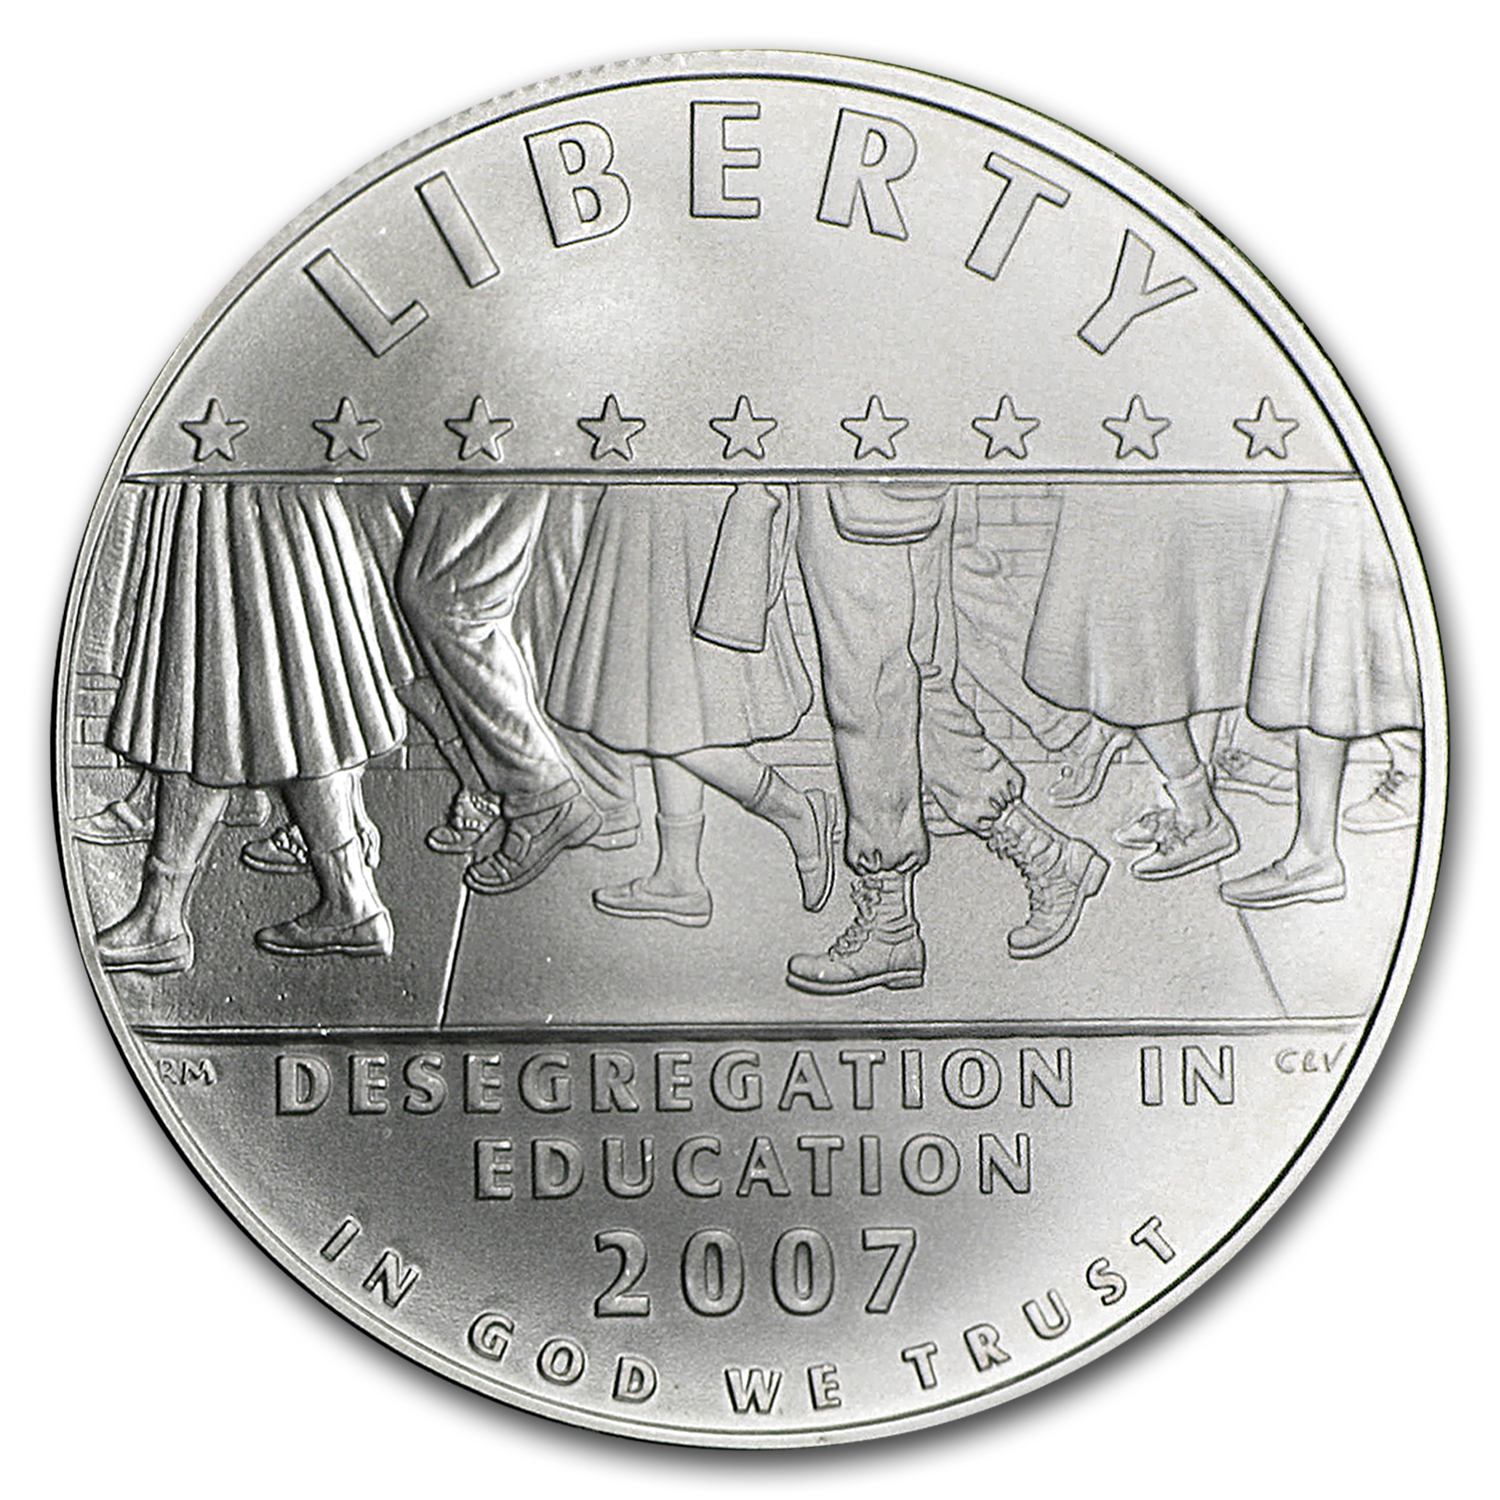 2007-P School Desegregation $1 Silver Commem BU (w/Box & COA)